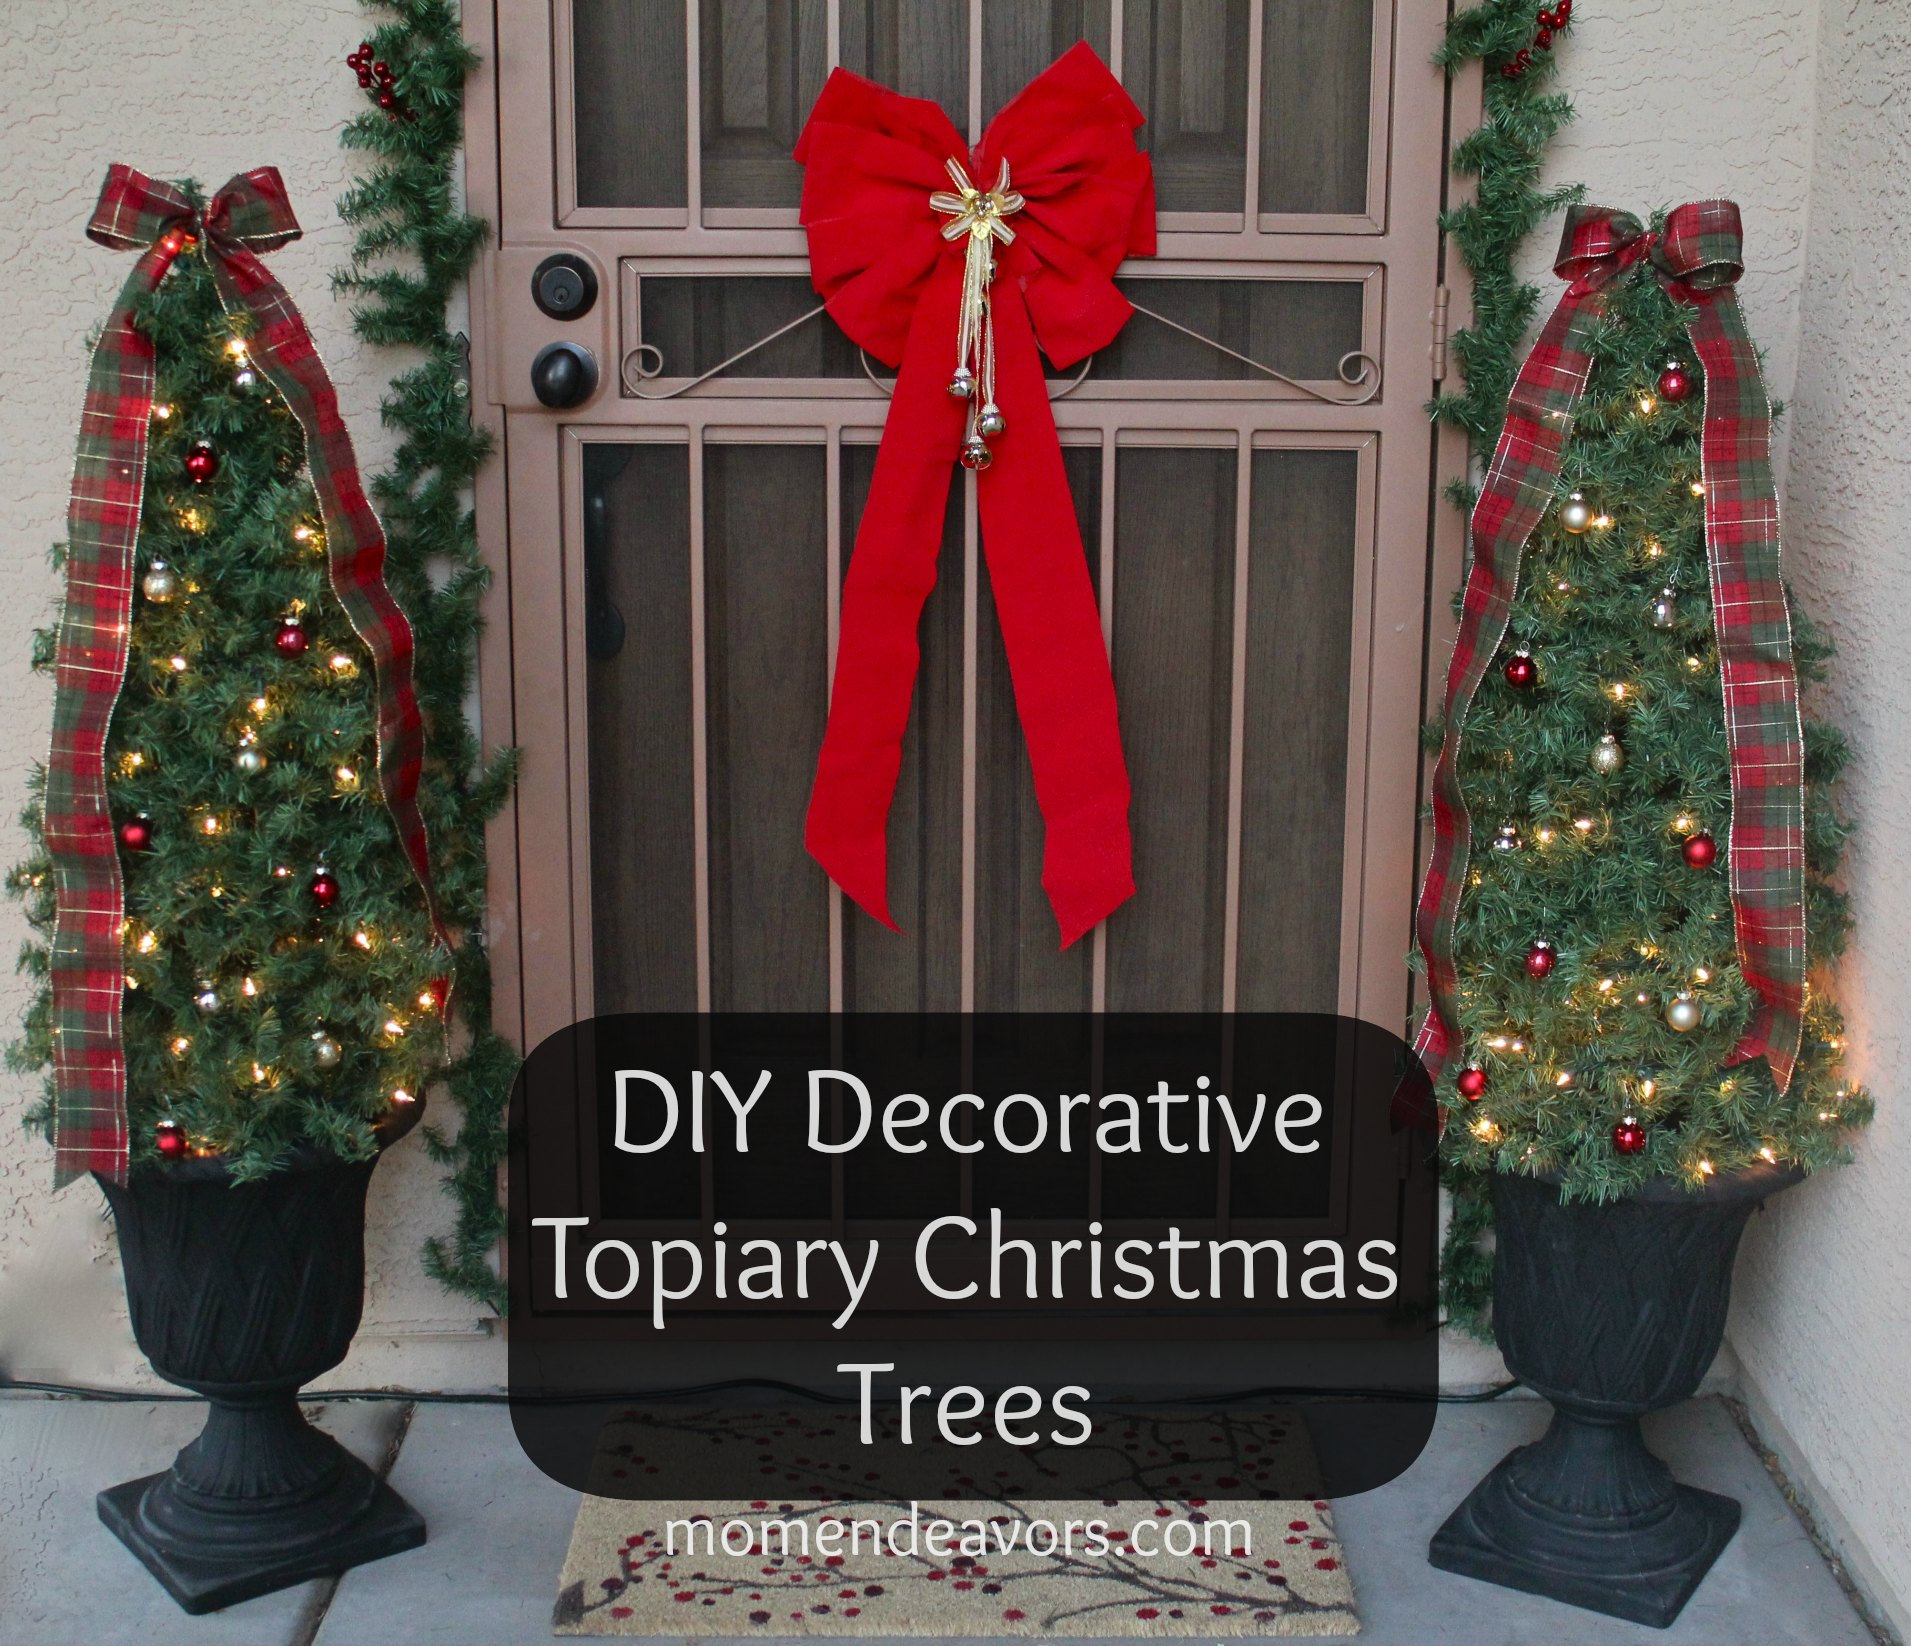 diy decorative topiary christmas trees - Christmas Topiary